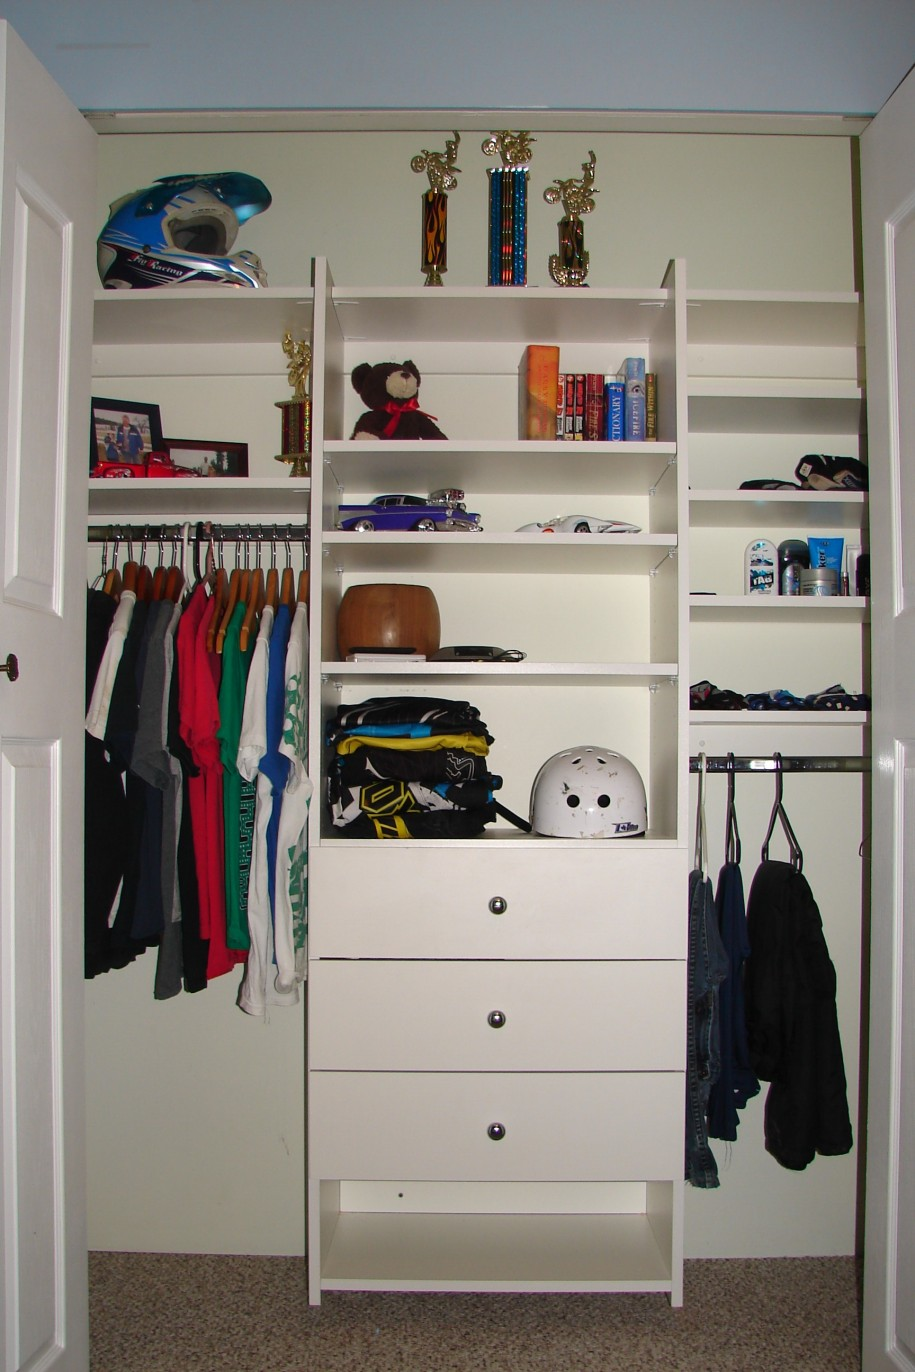 Excellent small closet interior design roselawnlutheran for Studio closet design